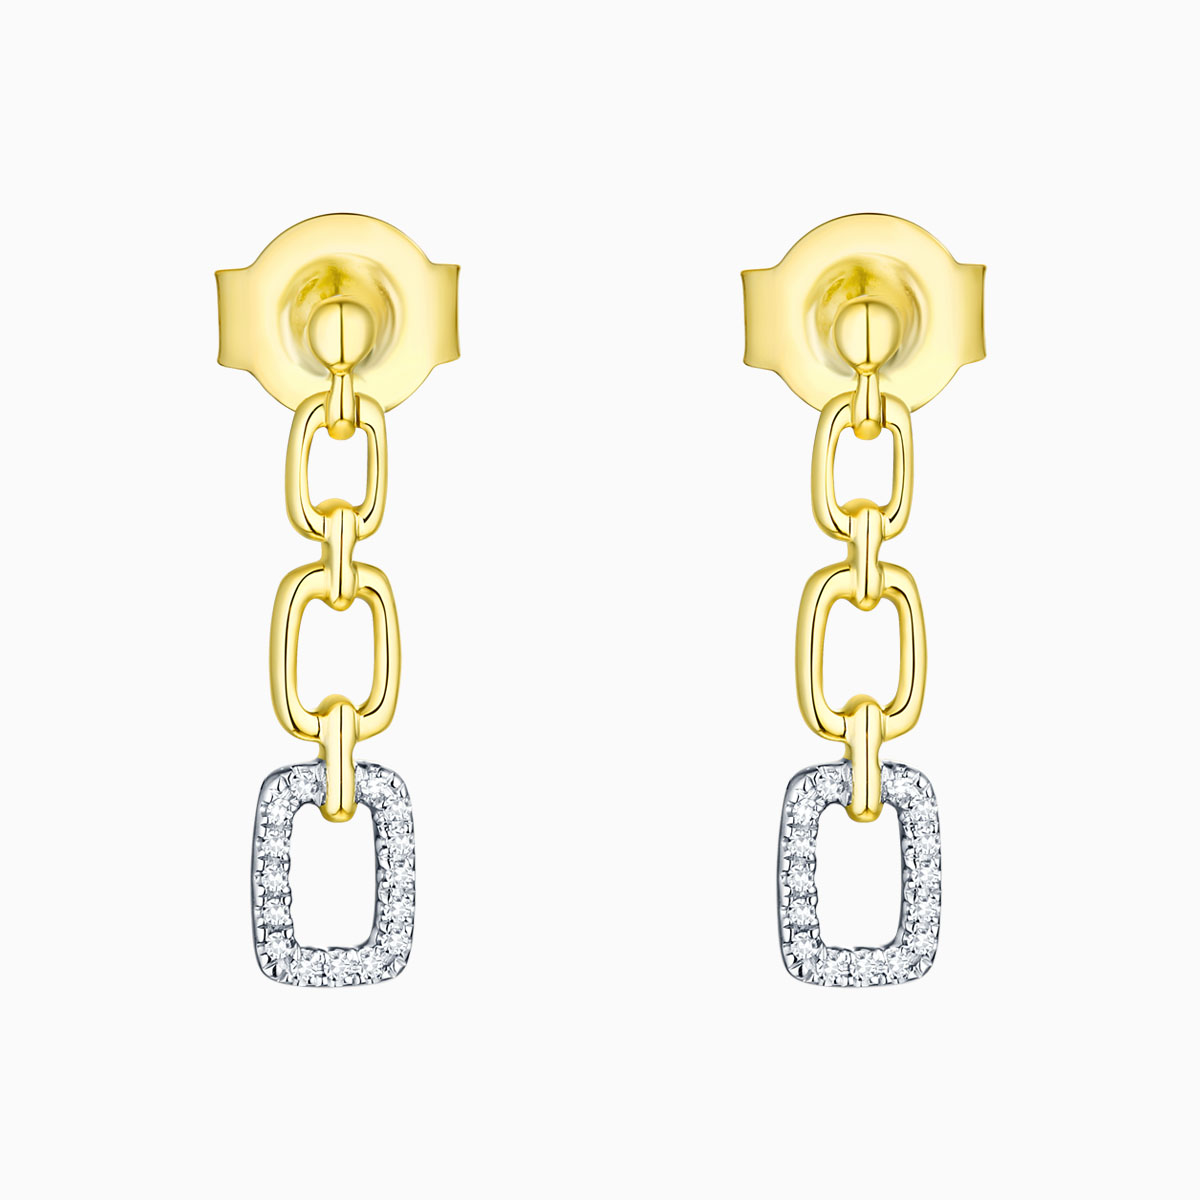 E13553WHT- 14K Yellow Gold Diamond Earrings, 0.04 TCW